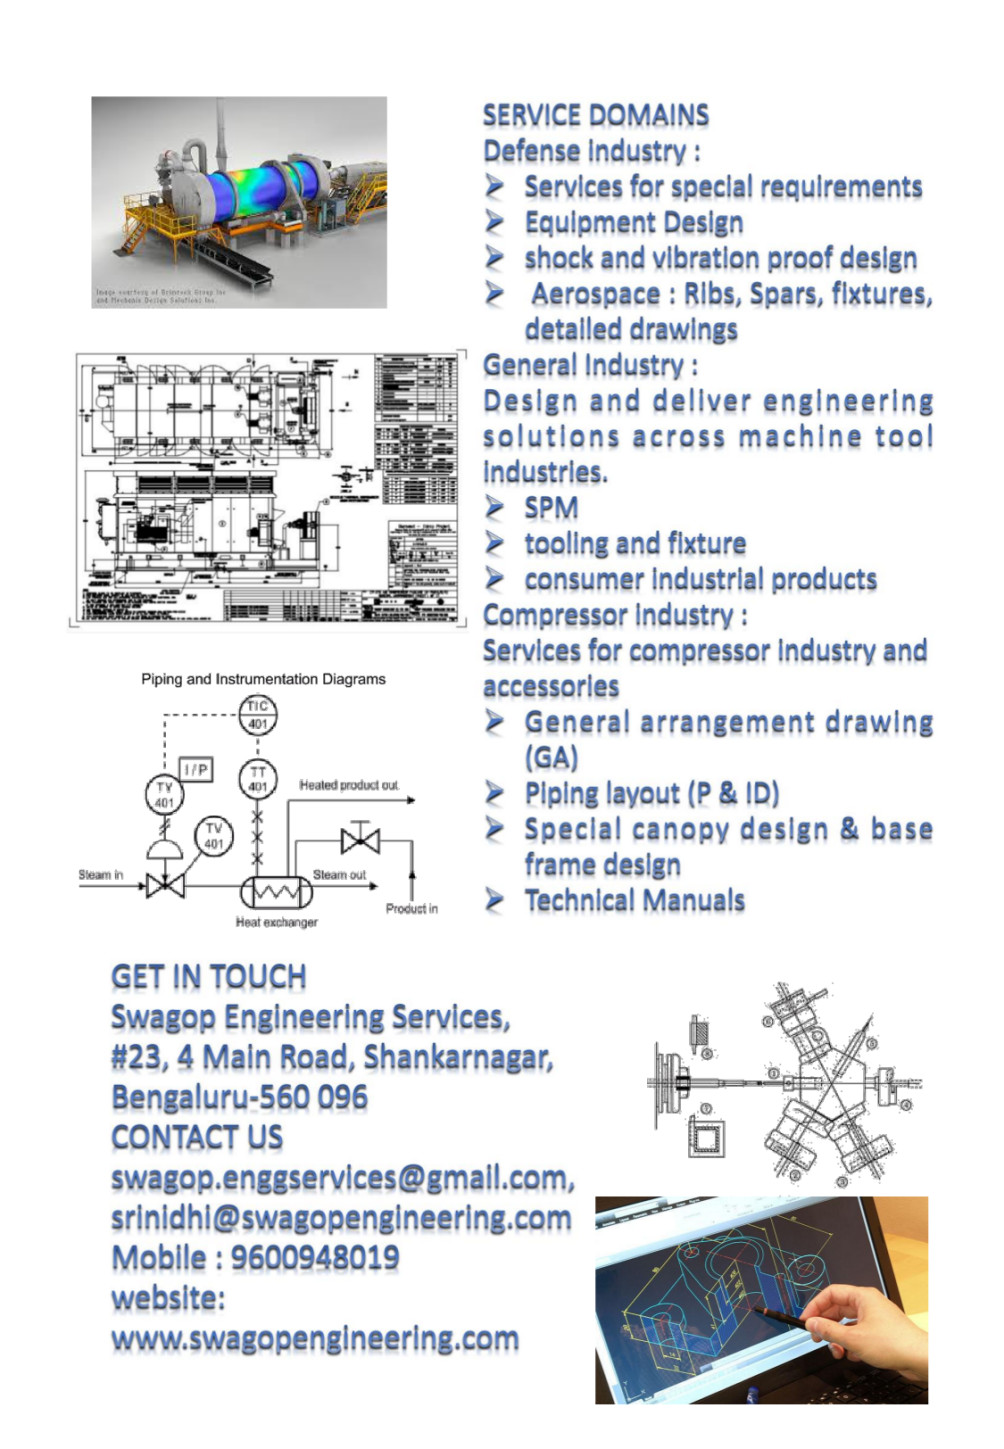 Expert In Mechanical Design And Engineering By Swagop Piping Layout Compressor